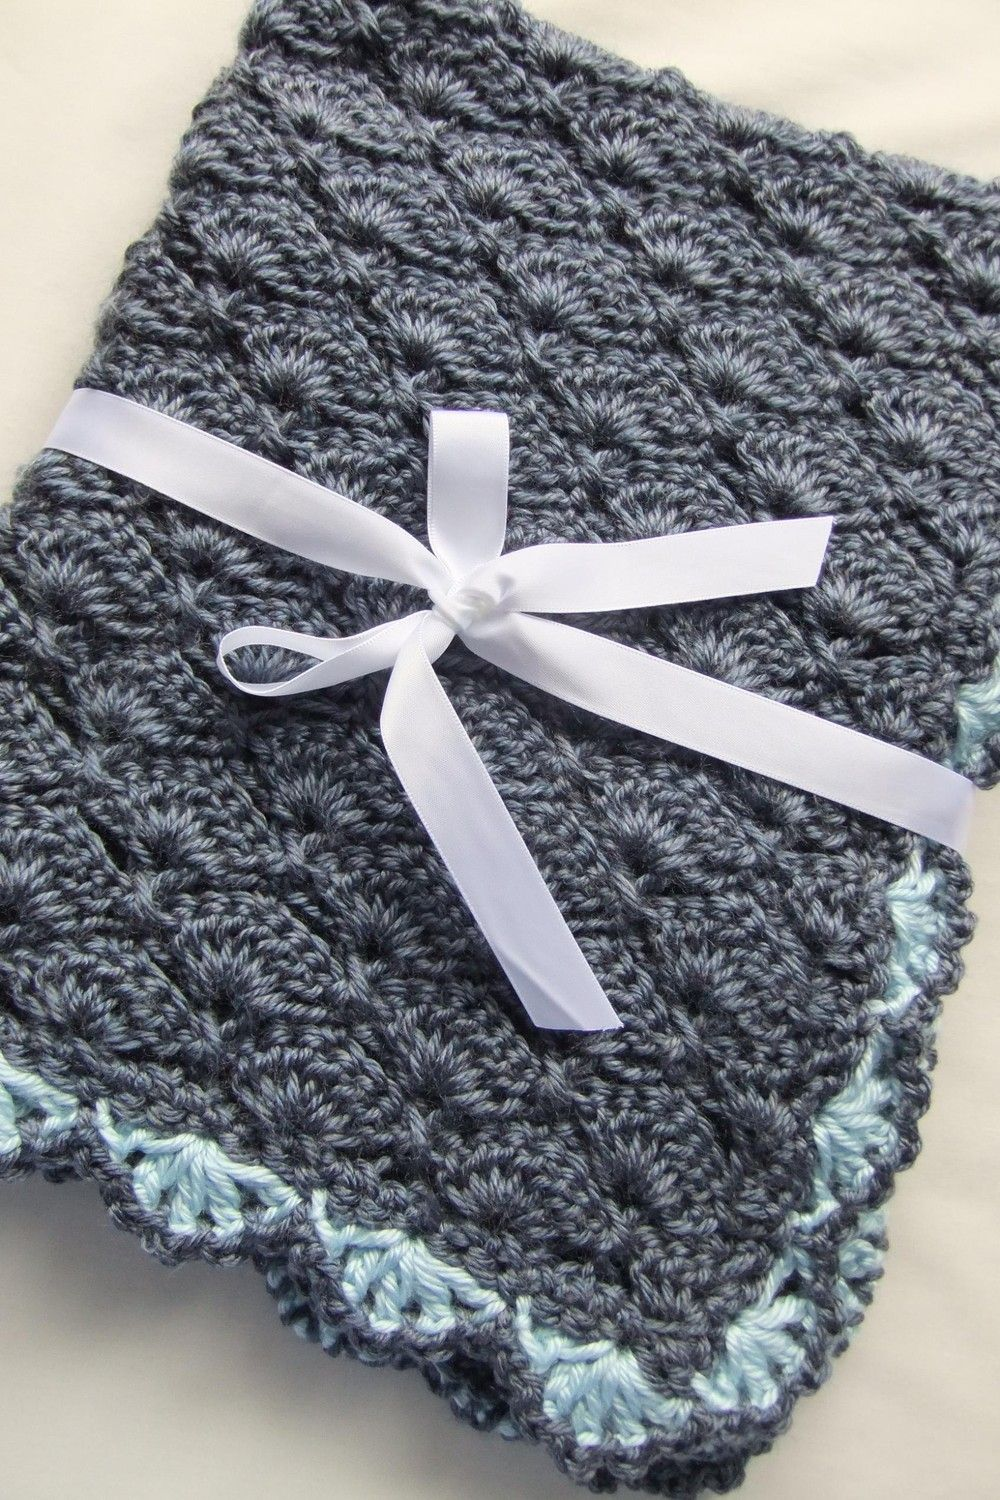 Baby Boy Blankets - Crochet Baby Boy Blankets - Denim Blue Panel ...